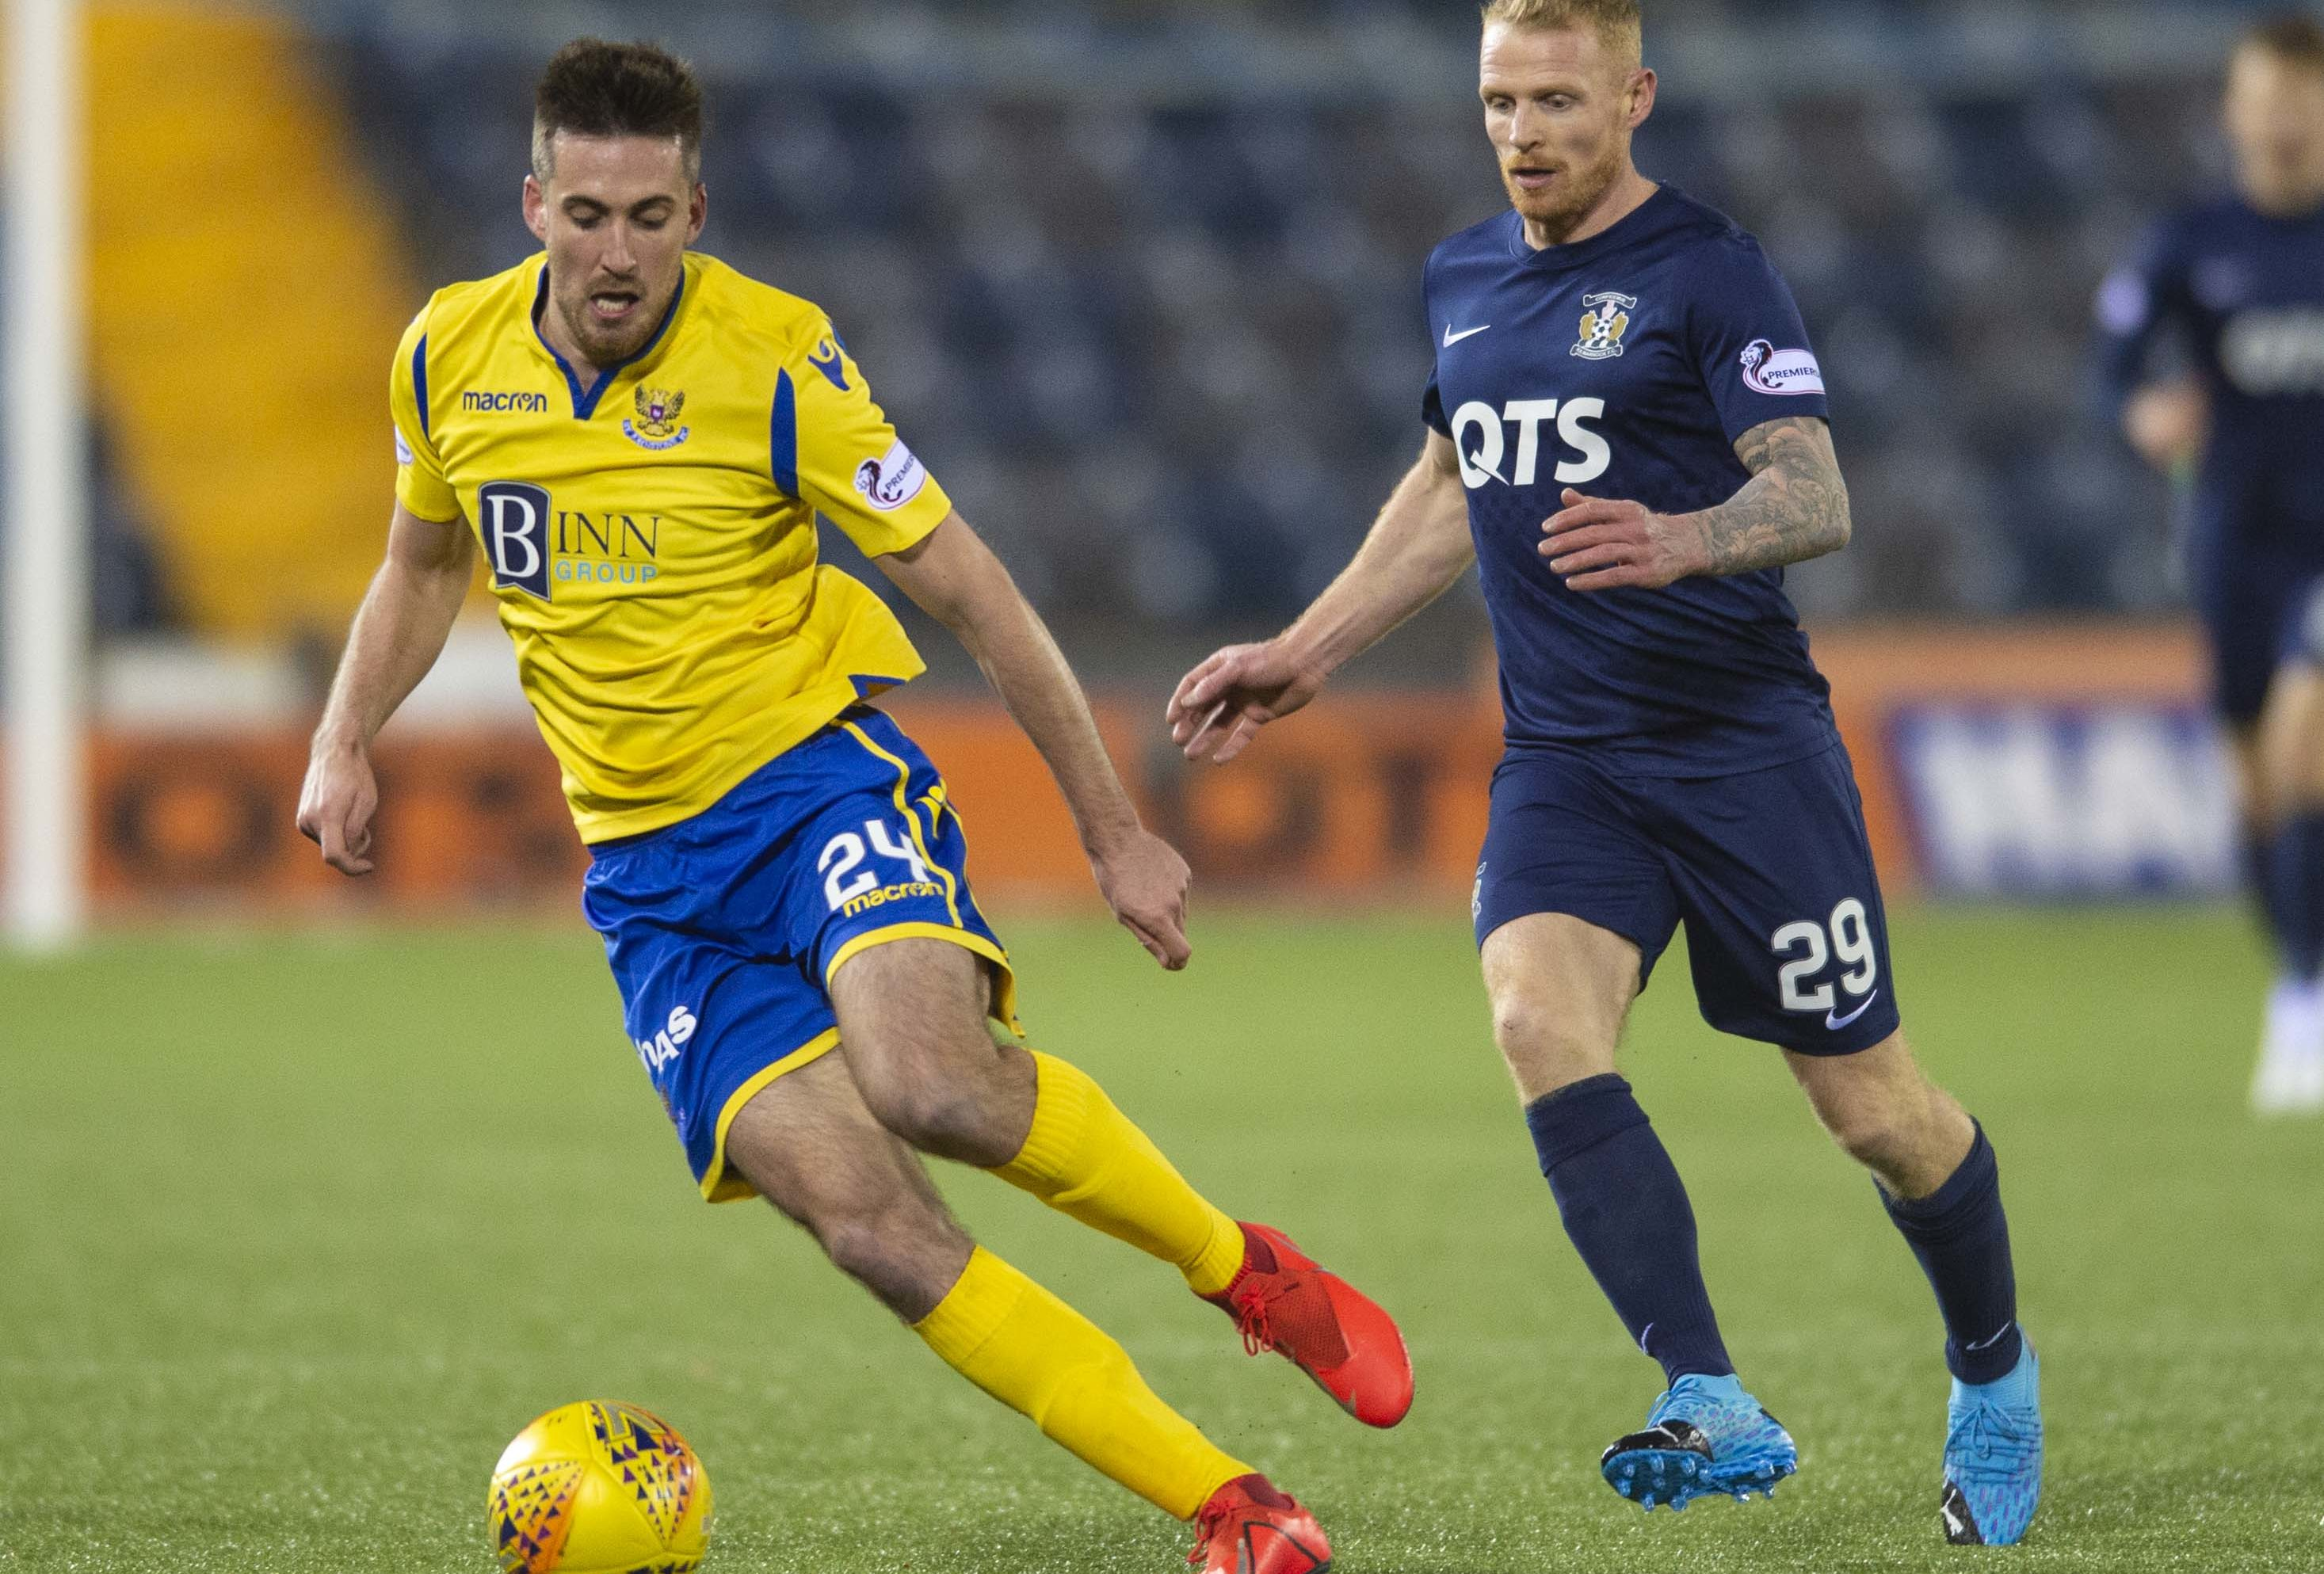 Callum Booth, left, in action against Killie.